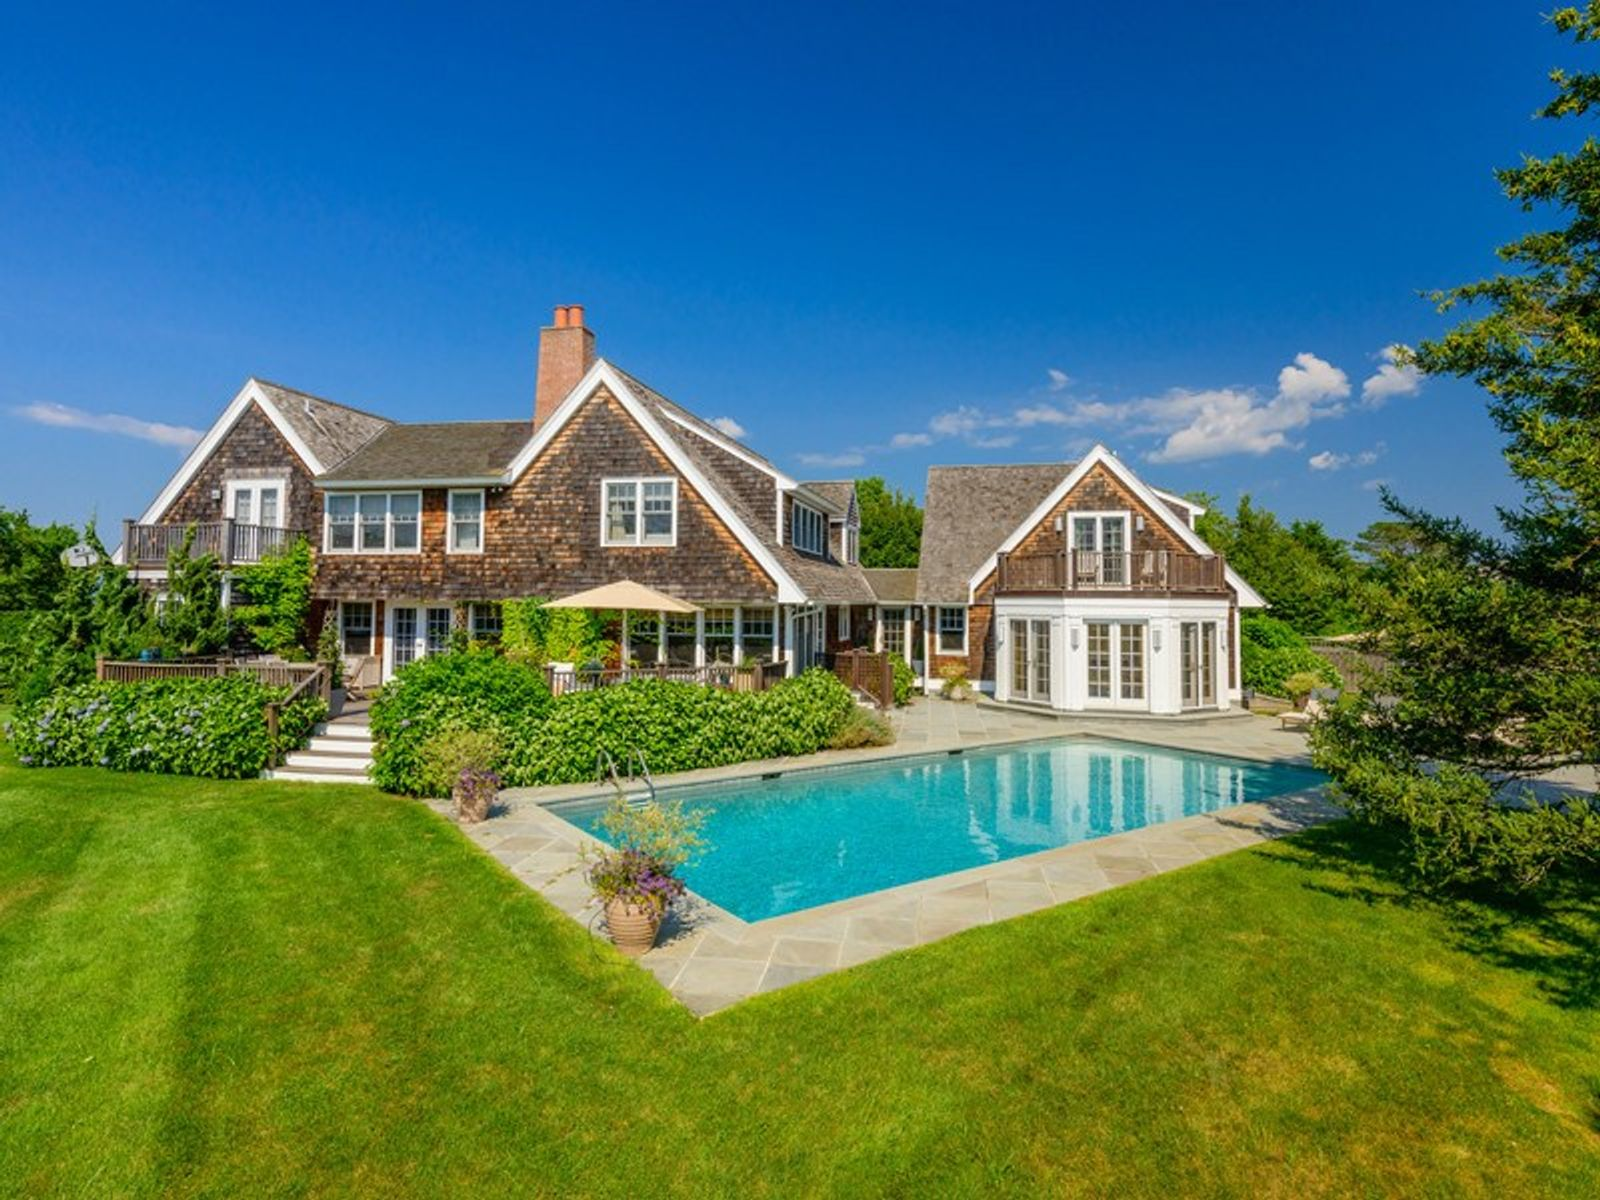 Lovely Shingle-Style Traditional w/Pool, Water Mill NY Single Family Home - Hamptons Real Estate